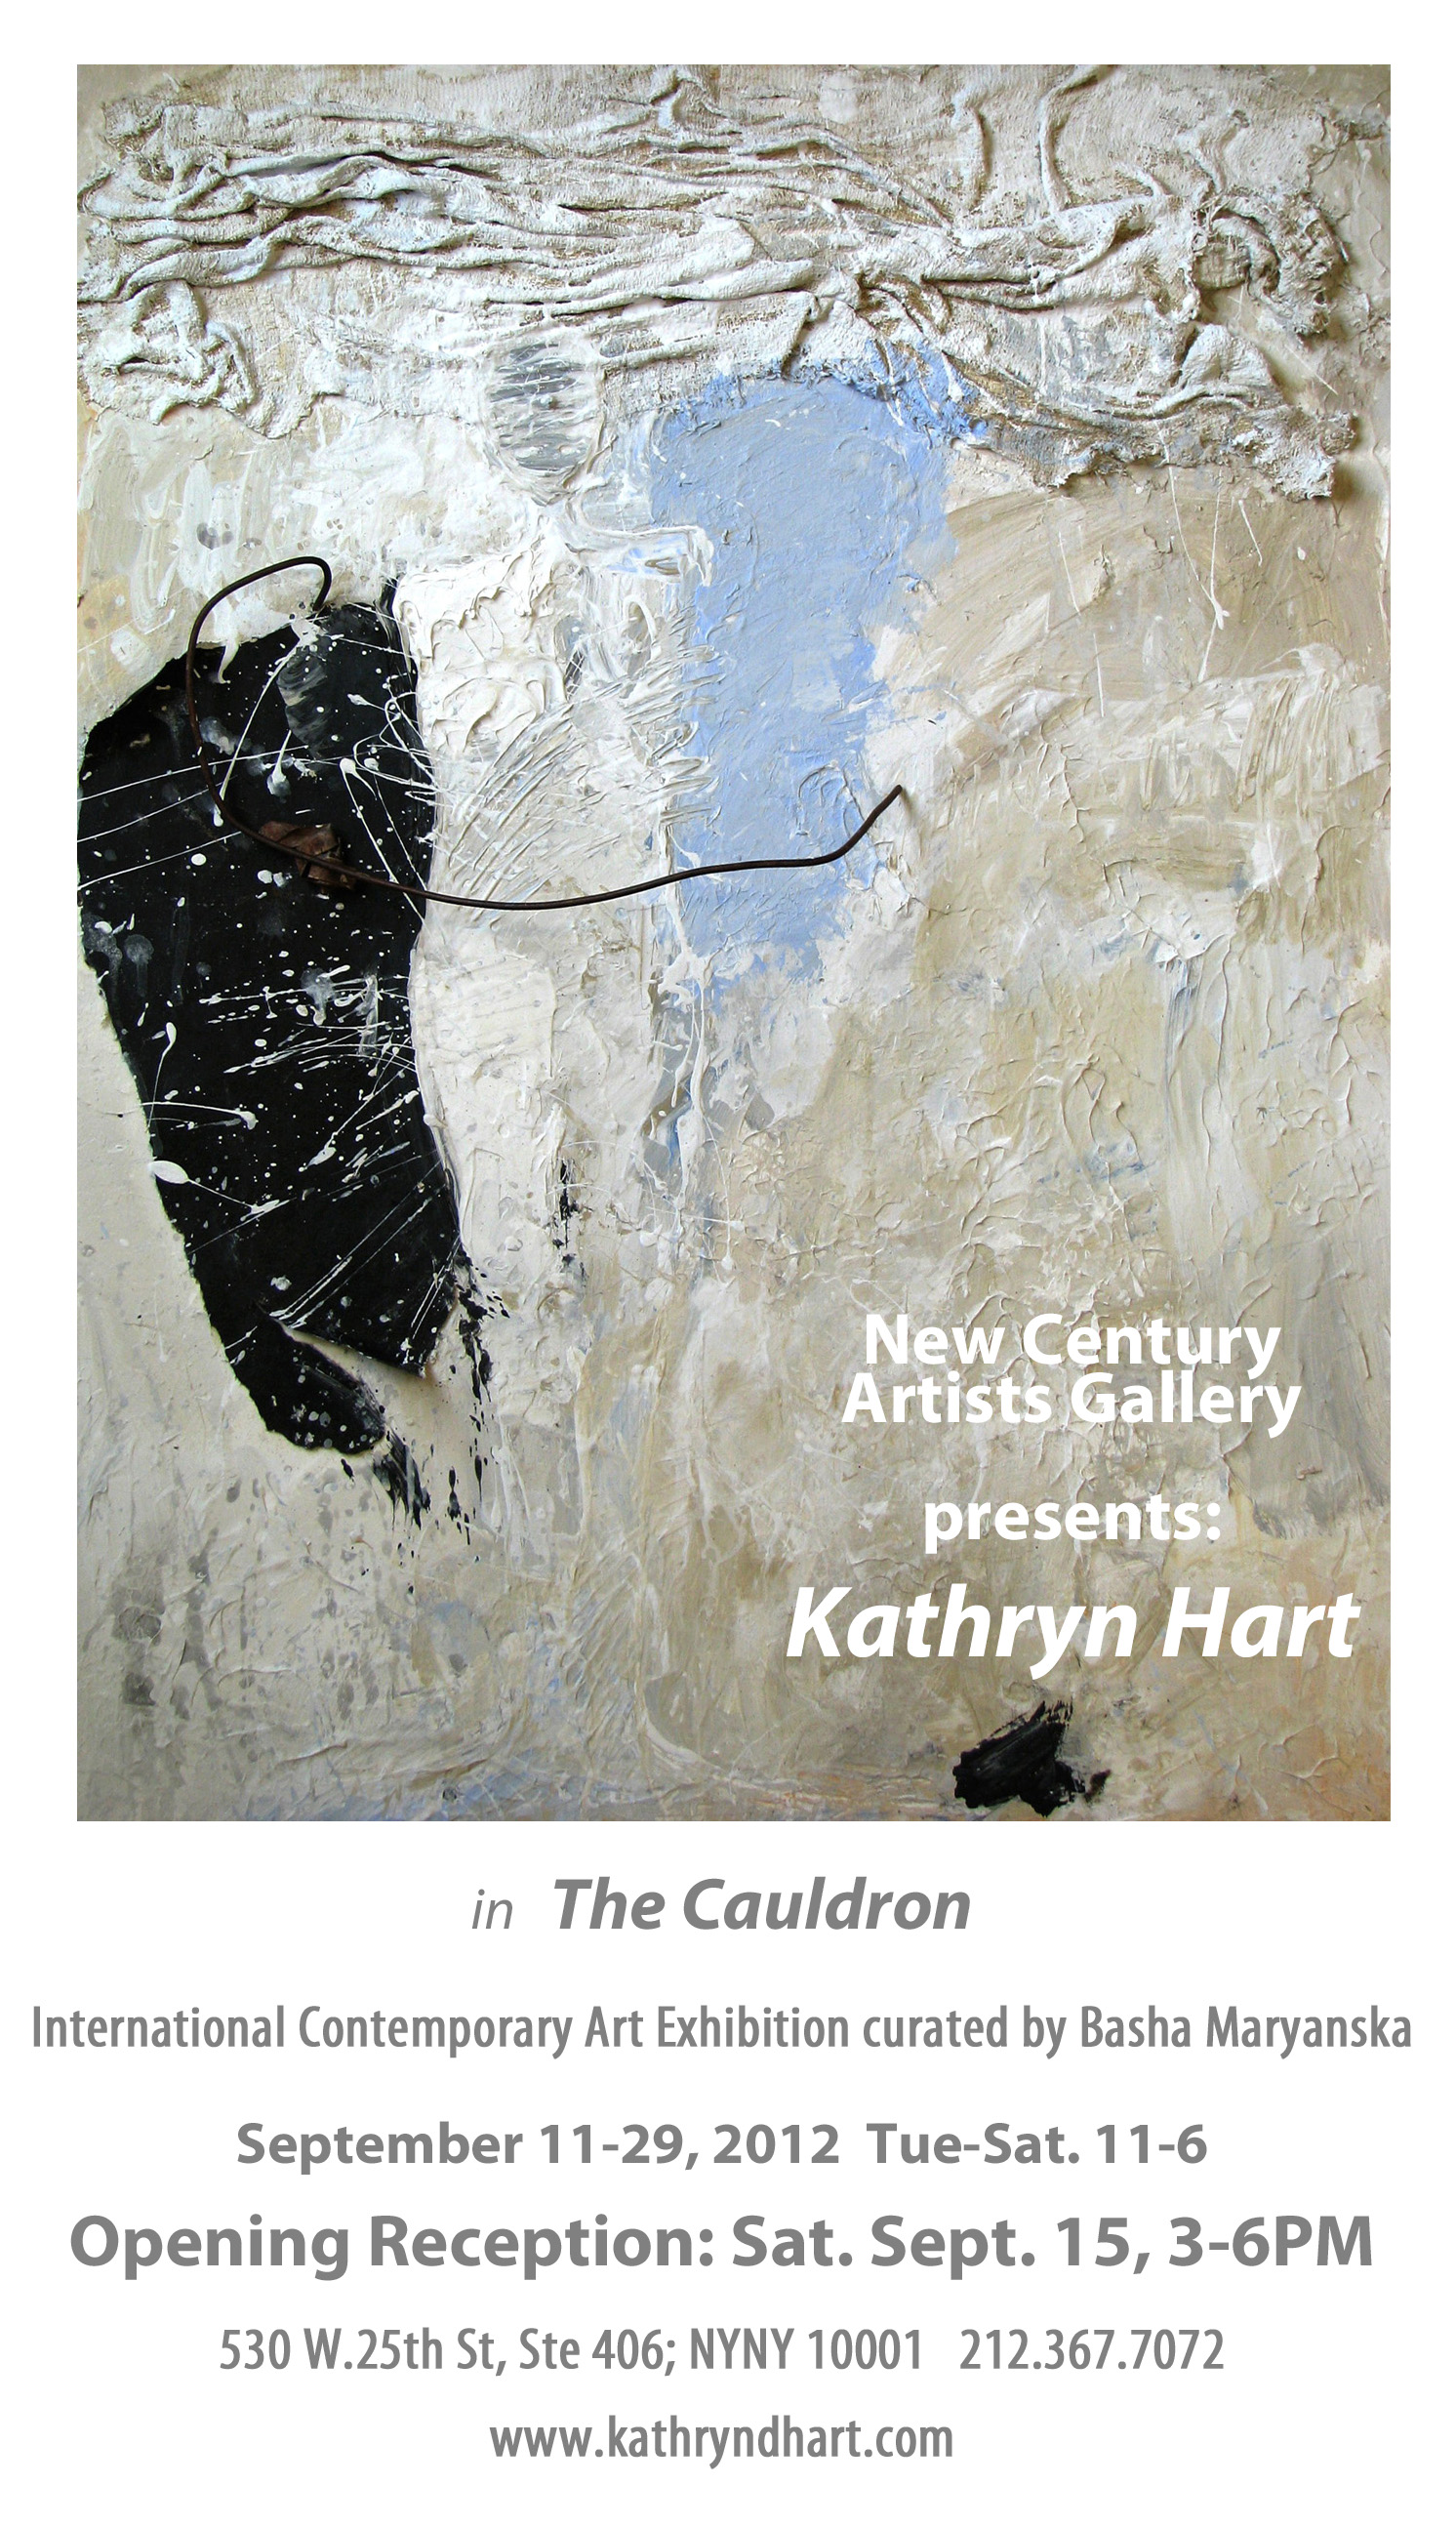 Kathryn Hart, The Cauldron, NYNY Sept 2012